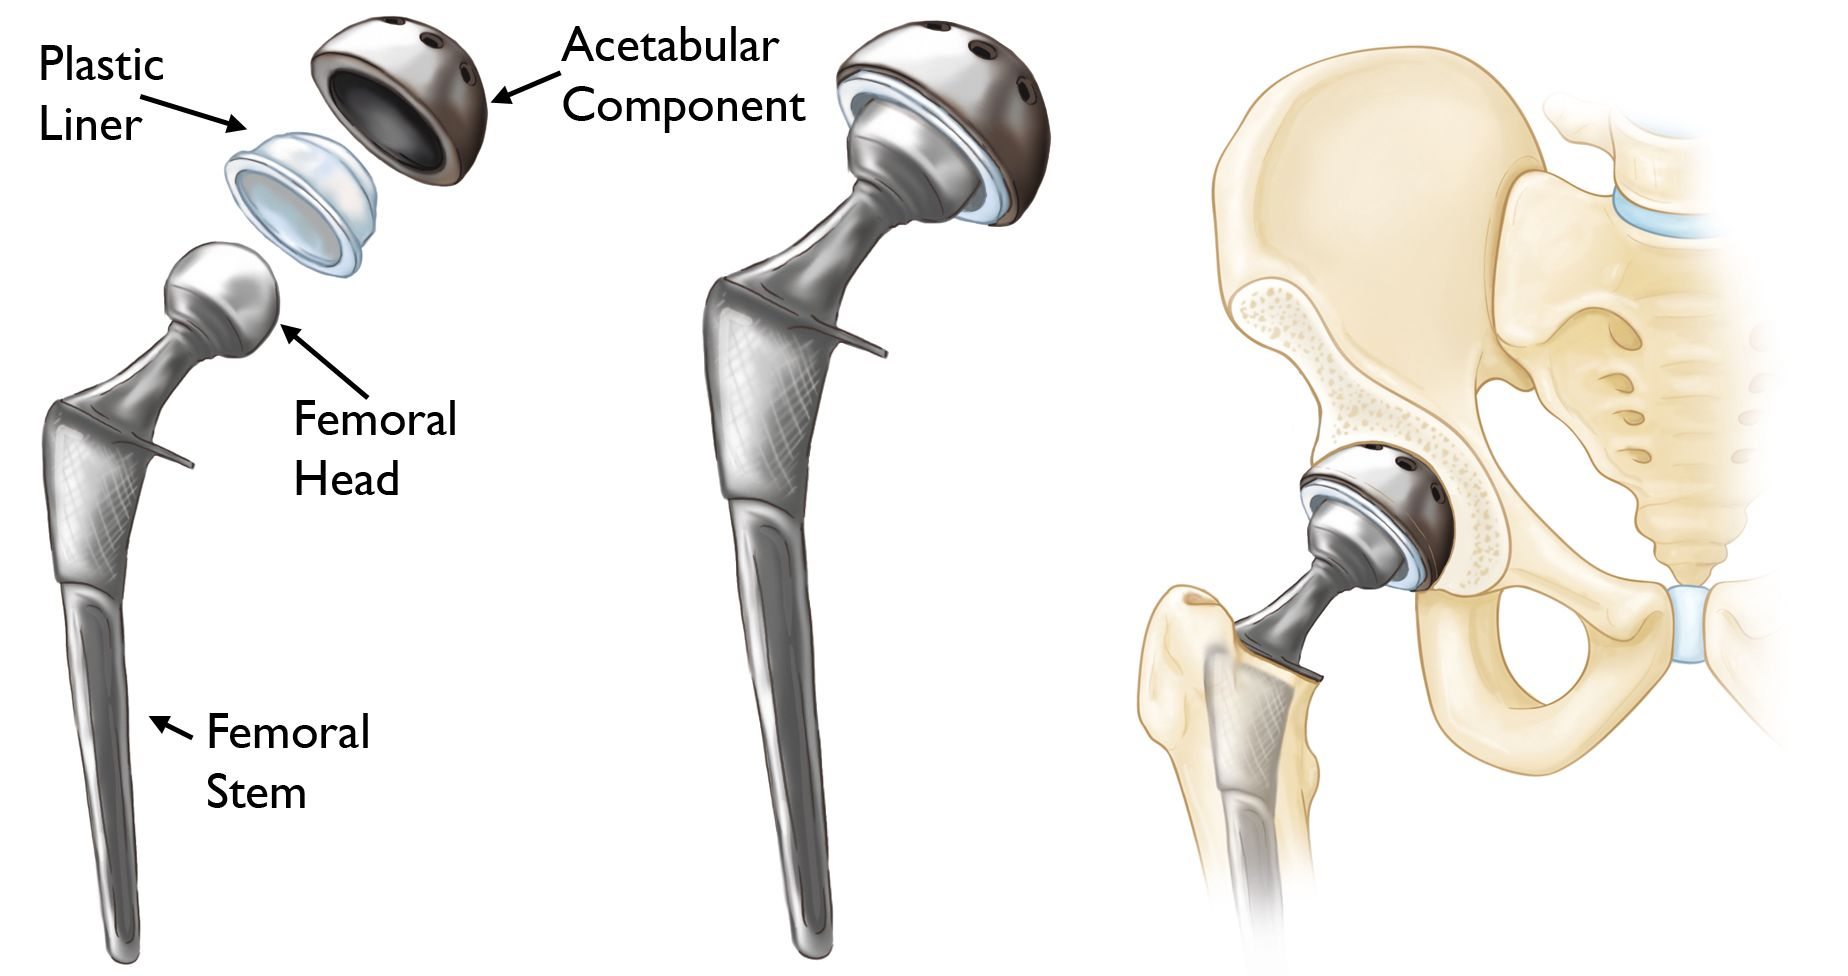 Minimally Invasive Total Hip Replacement - OrthoInfo - AAOS